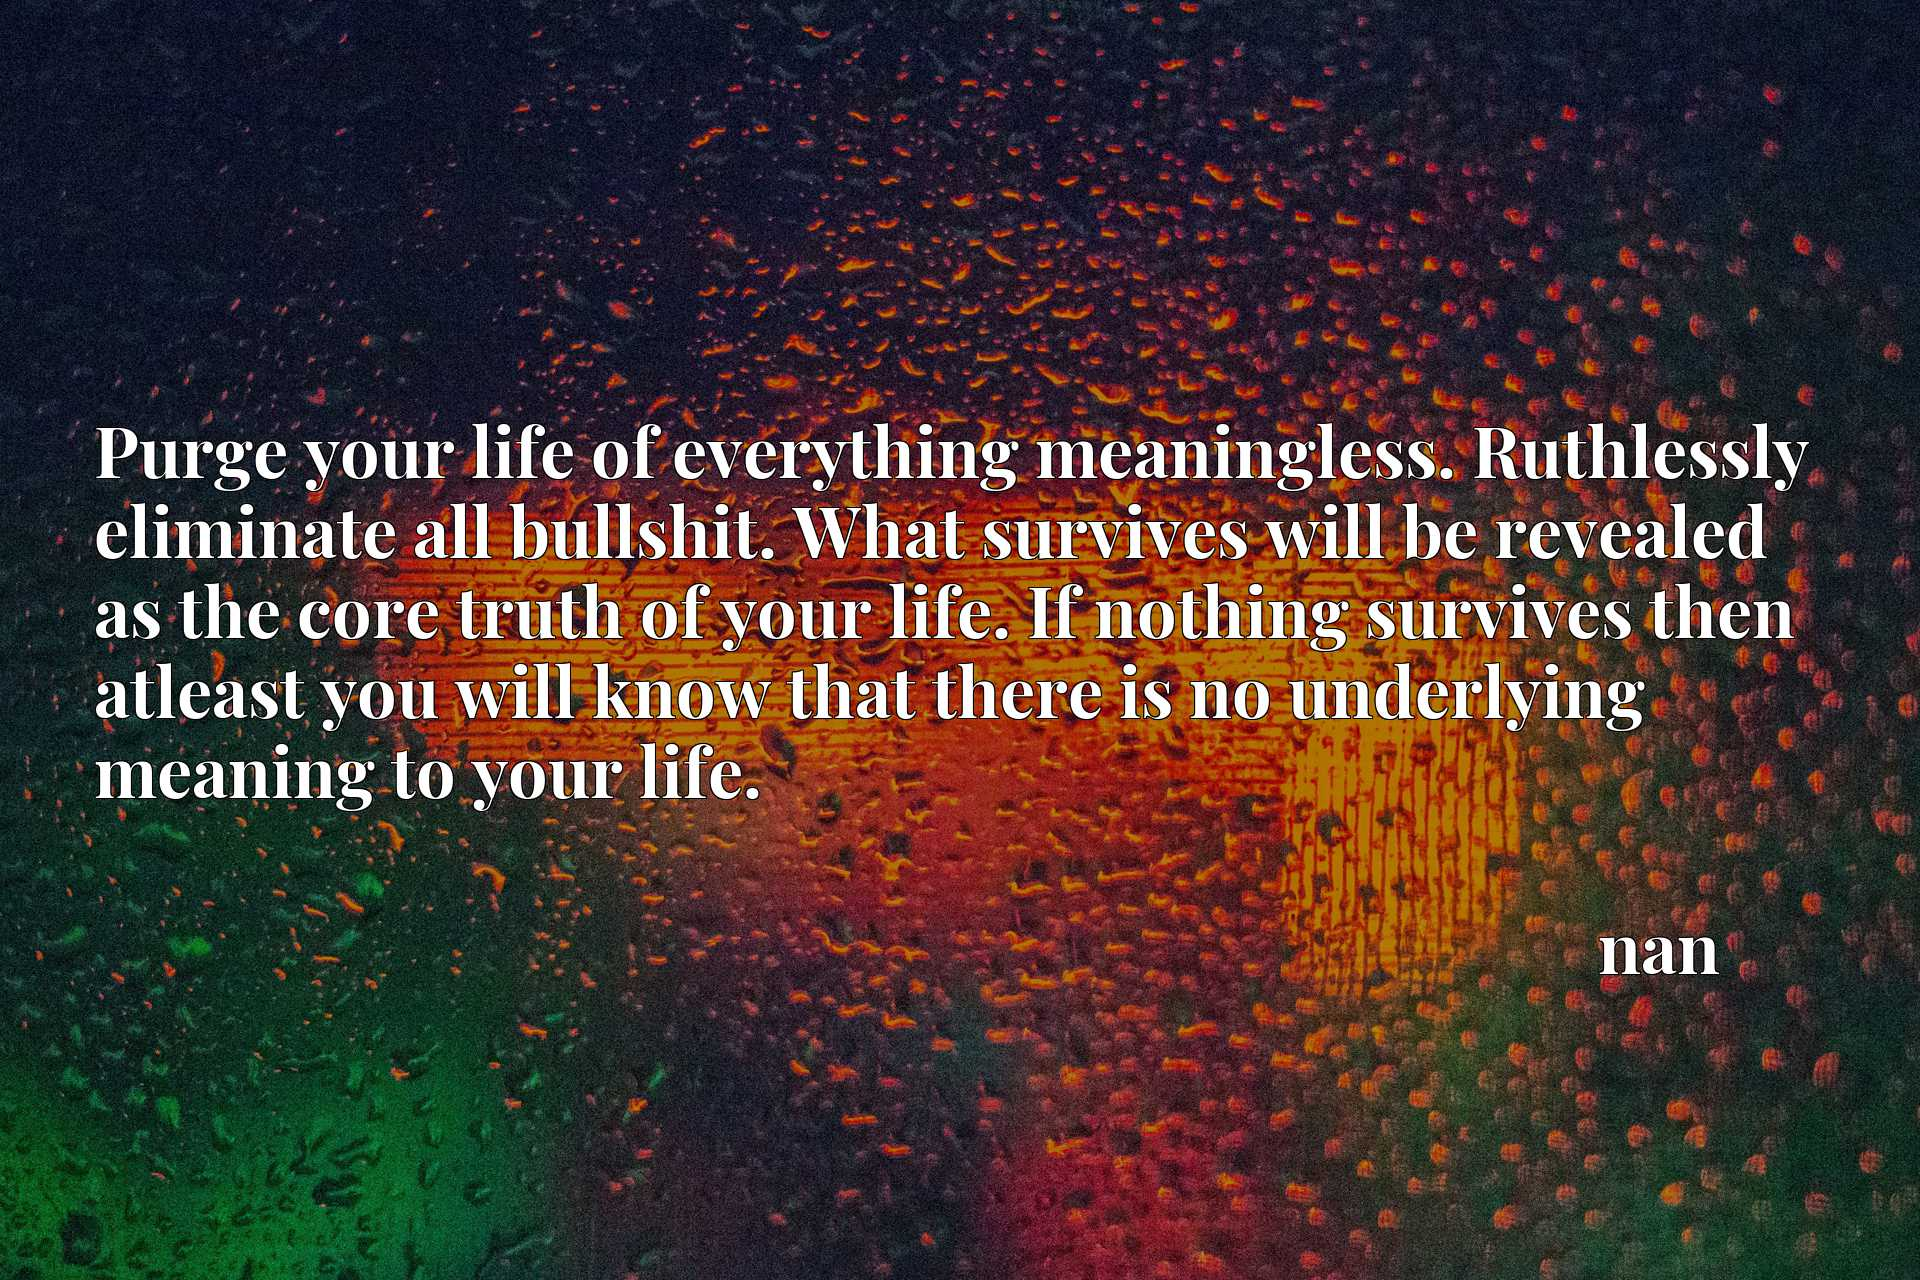 Purge your life of everything meaningless. Ruthlessly eliminate all bullshit. What survives will be revealed as the core truth of your life. If nothing survives then atleast you will know that there is no underlying meaning to your life.